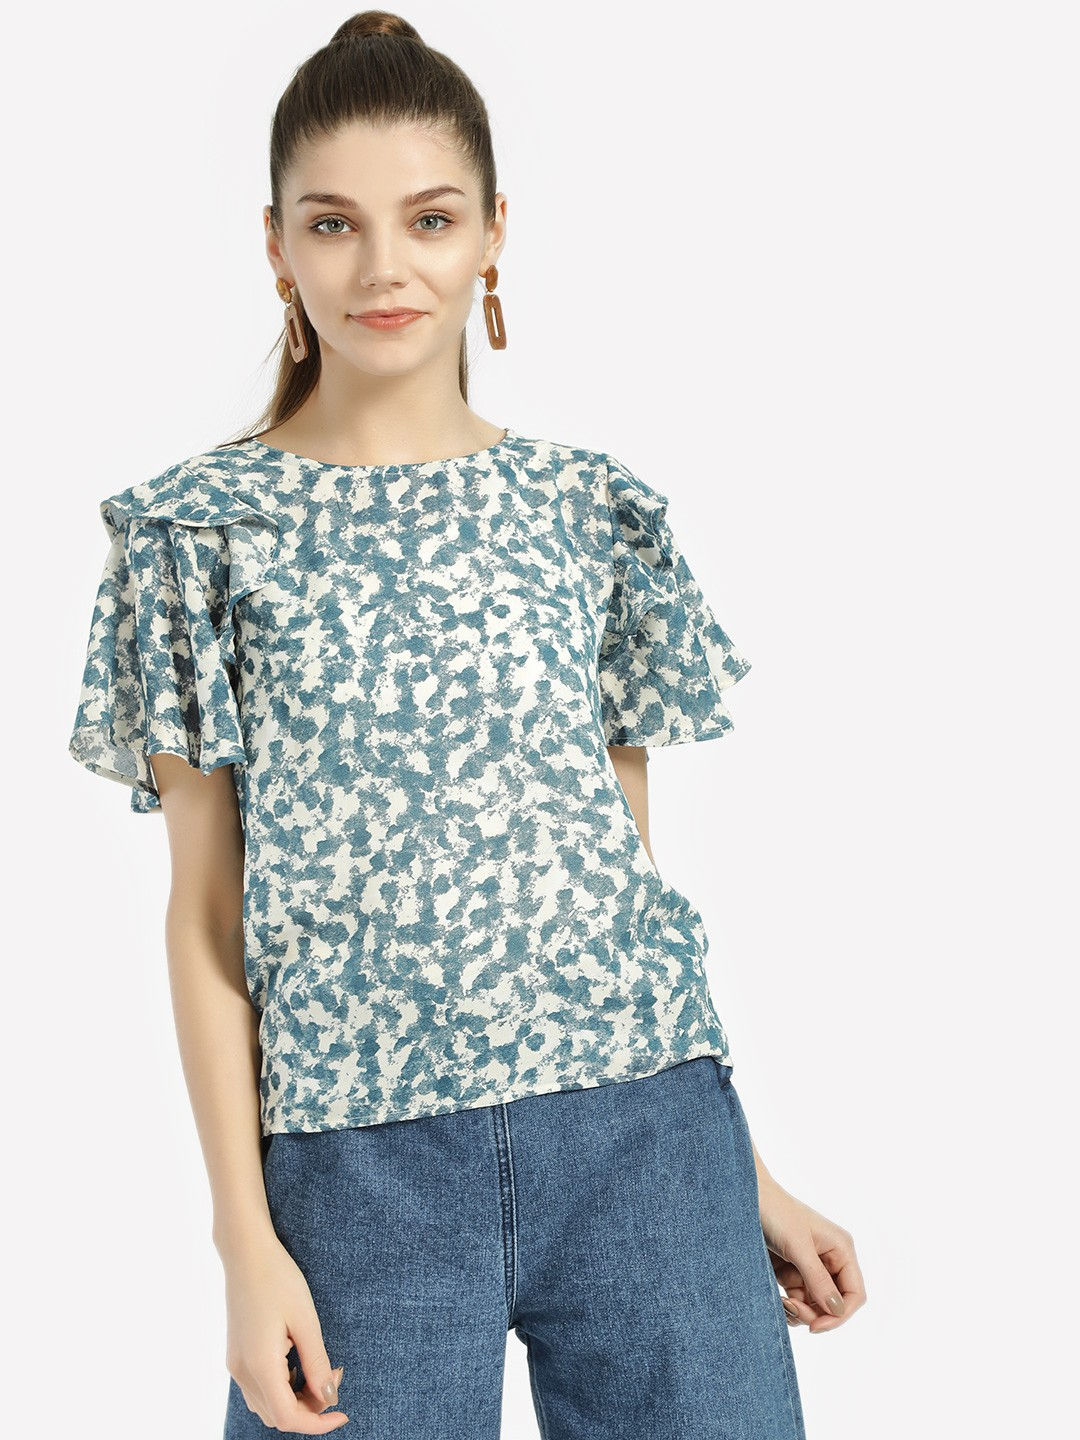 Lee Cooper Blue Abstract Print Tiered Sleeve Tops 1